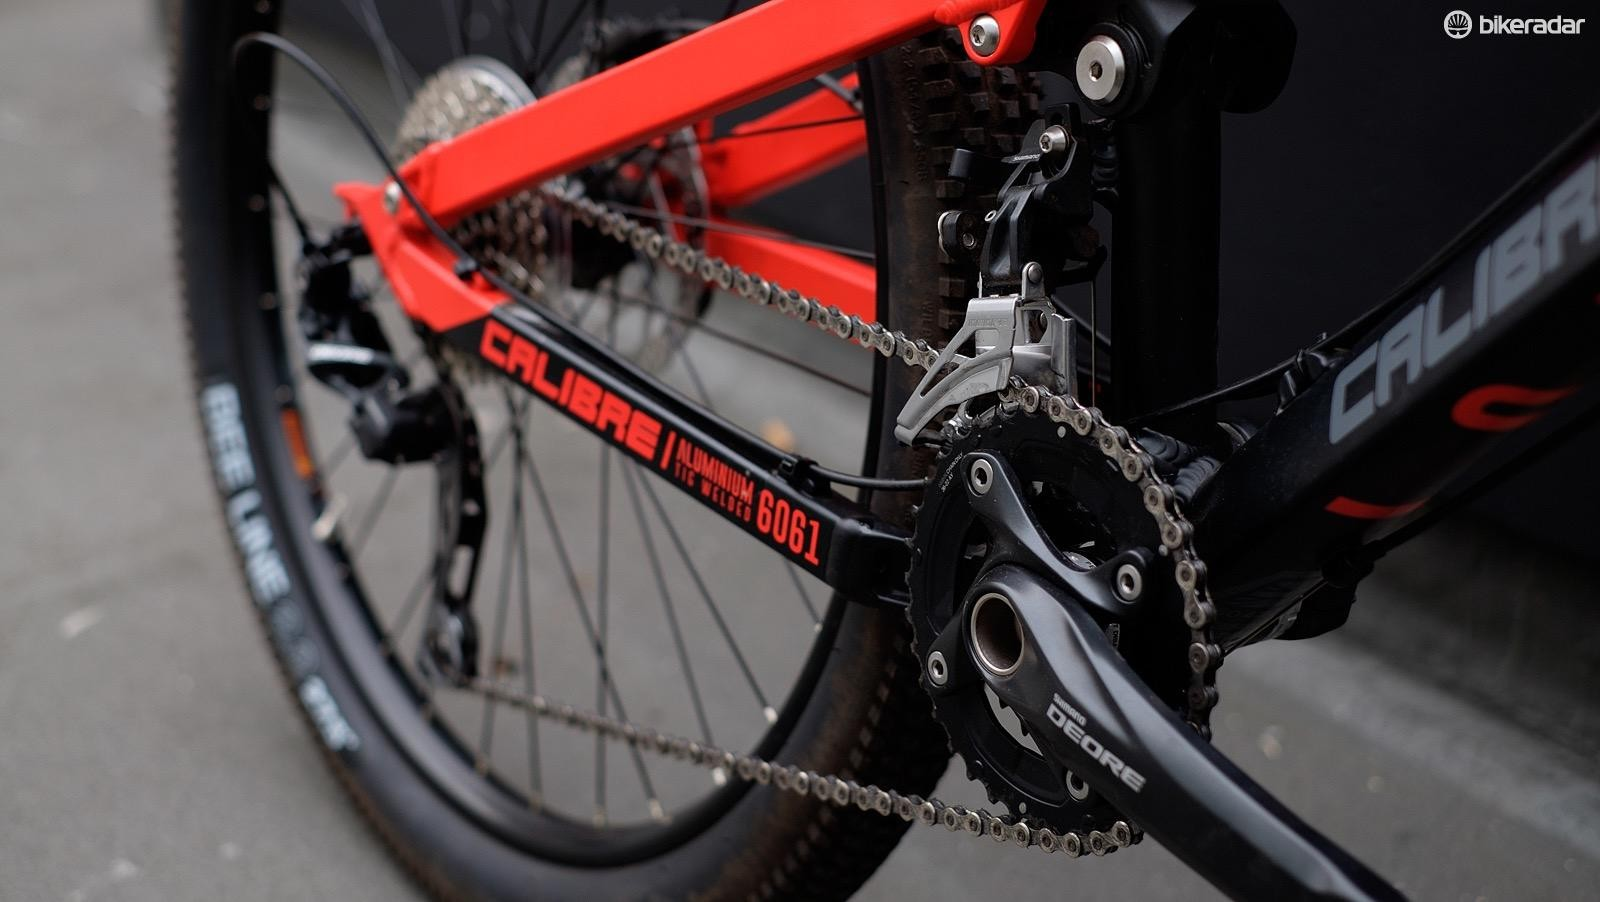 The 2x10 Deore transmission is retained by a clutch mech and scales a Sunrace 11-36t cassette